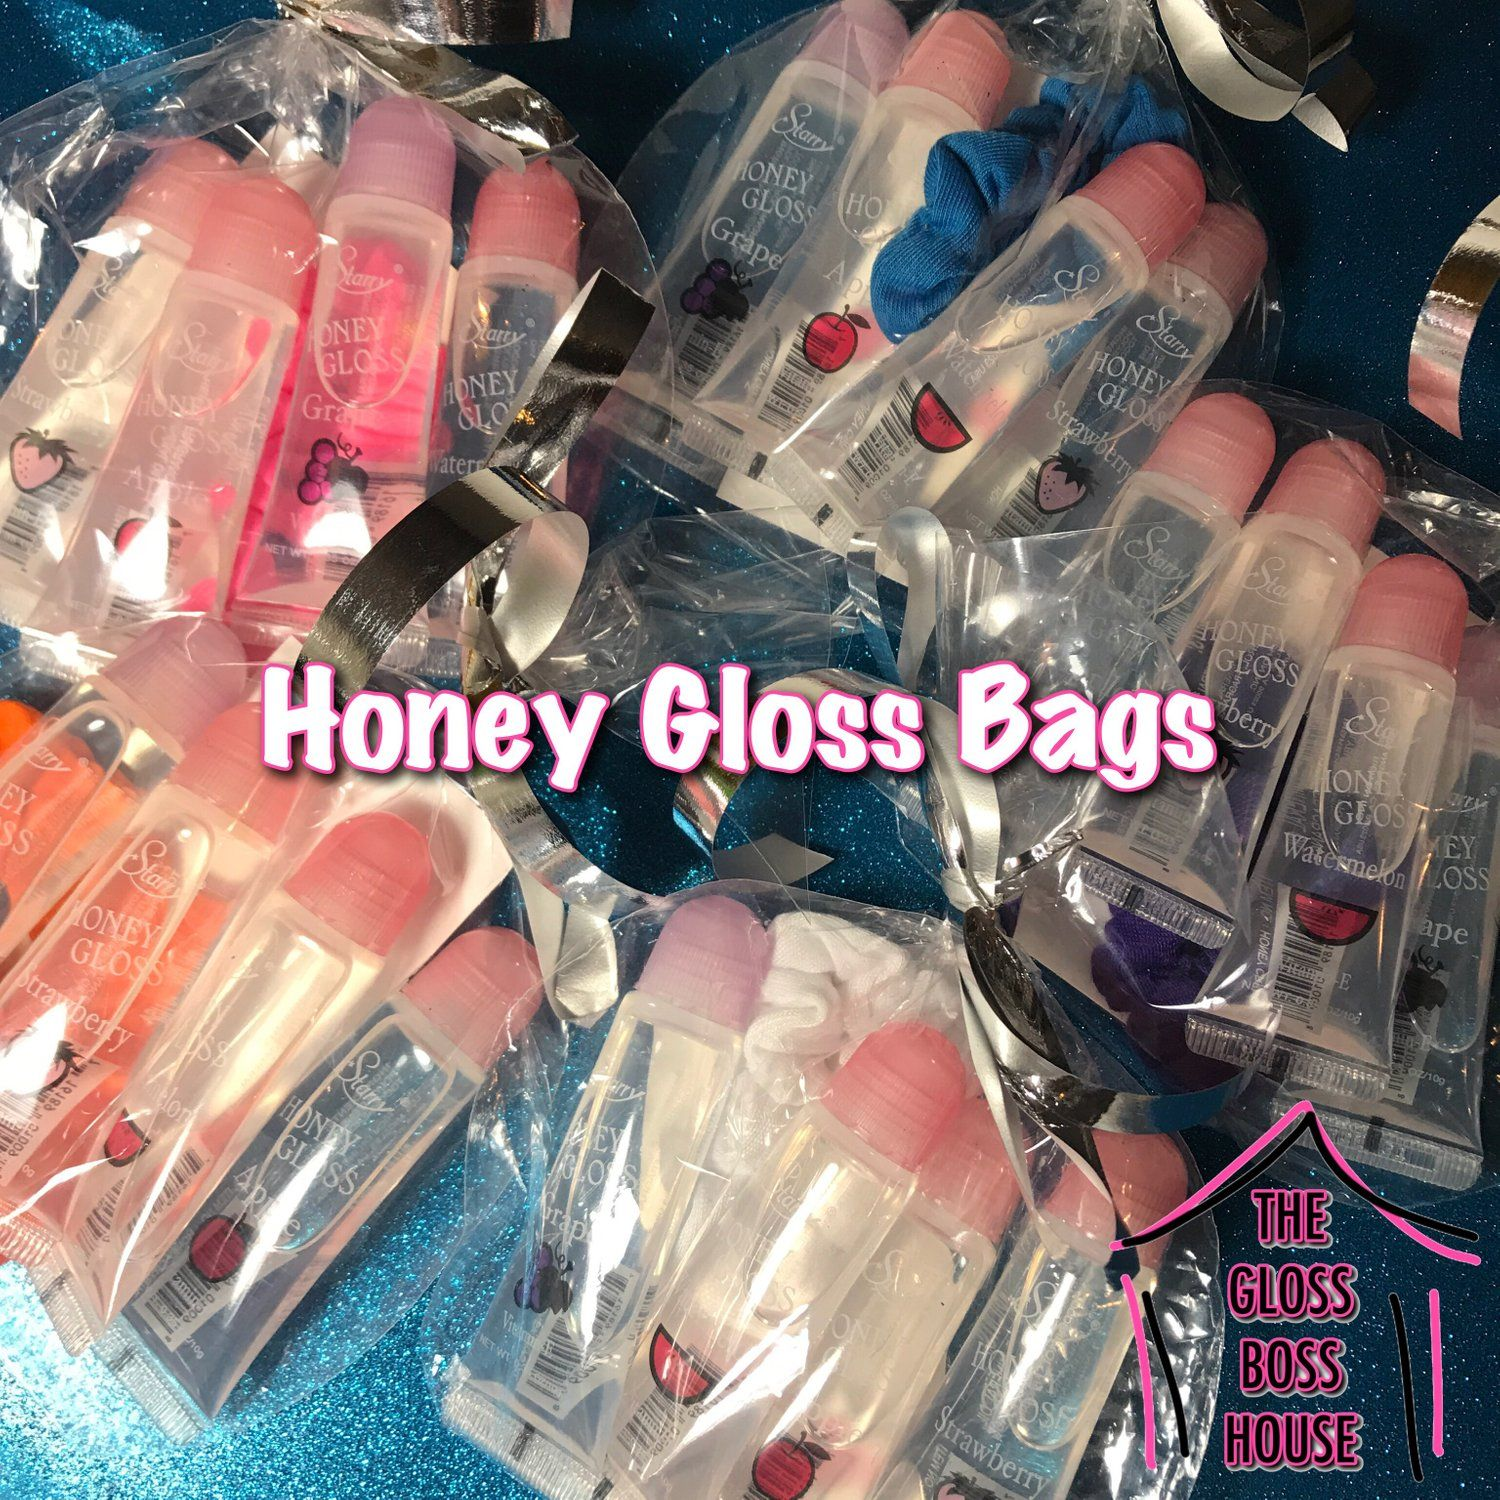 Honey Gloss Bags Candy Ice Couture Lip Gloss Collection Lip